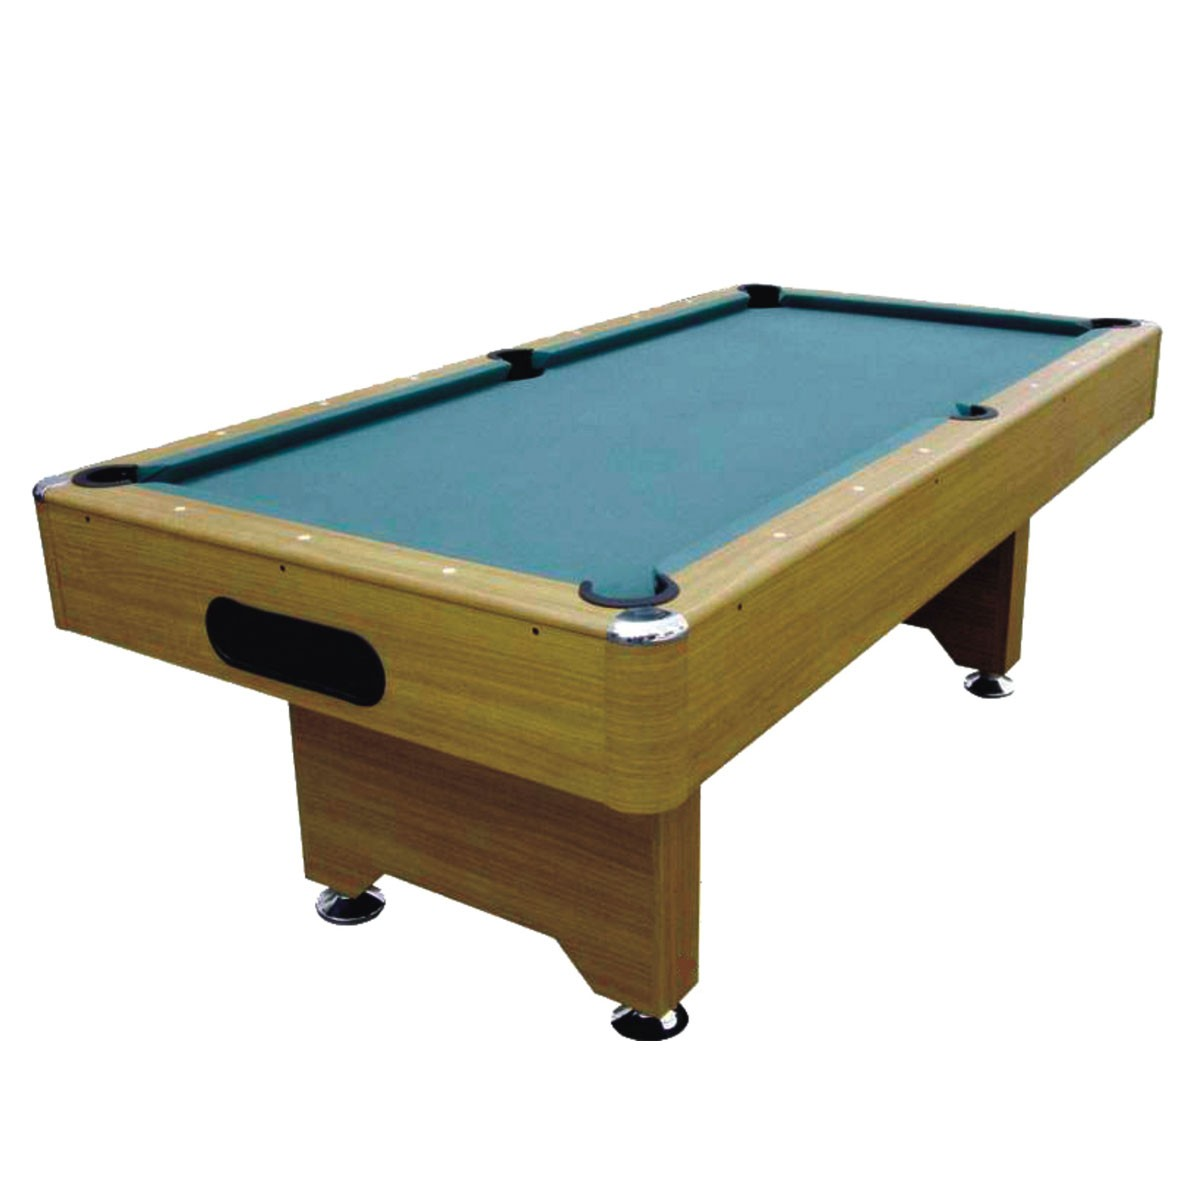 8 Foot Pool Table with Ball Return System and Accessories (ZLB-P12)